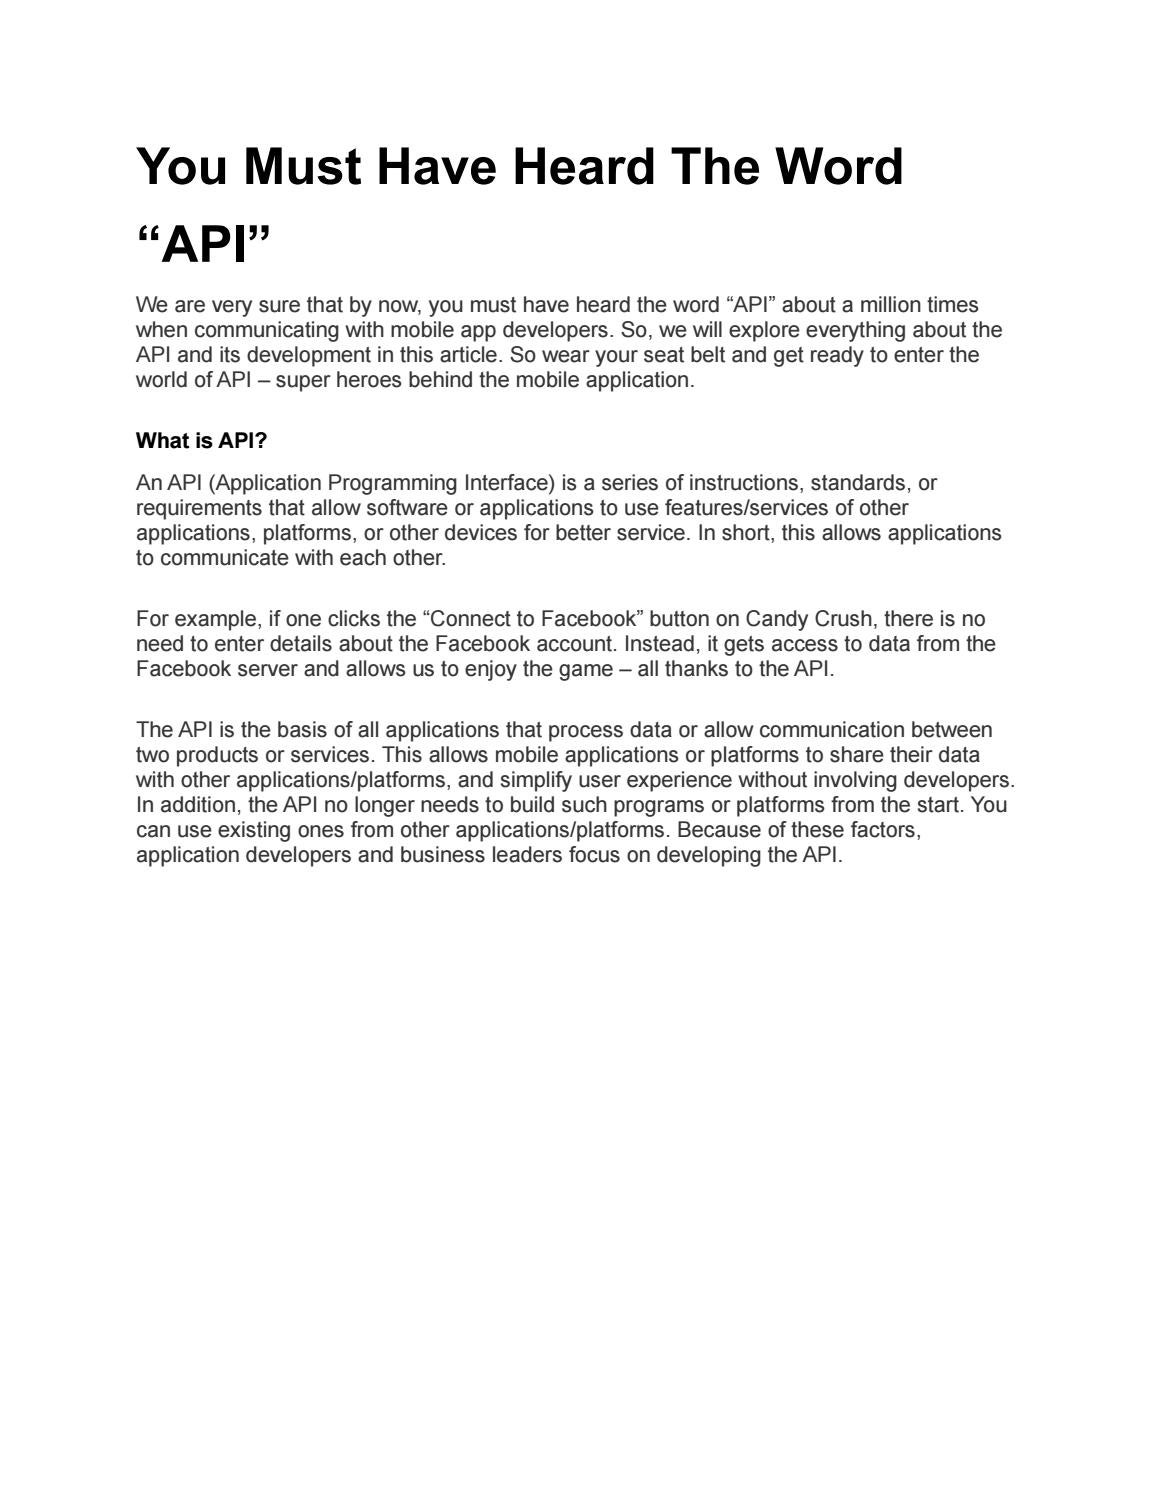 """You Must Have Heard The Word """"API"""" by seo lucentasolutions"""